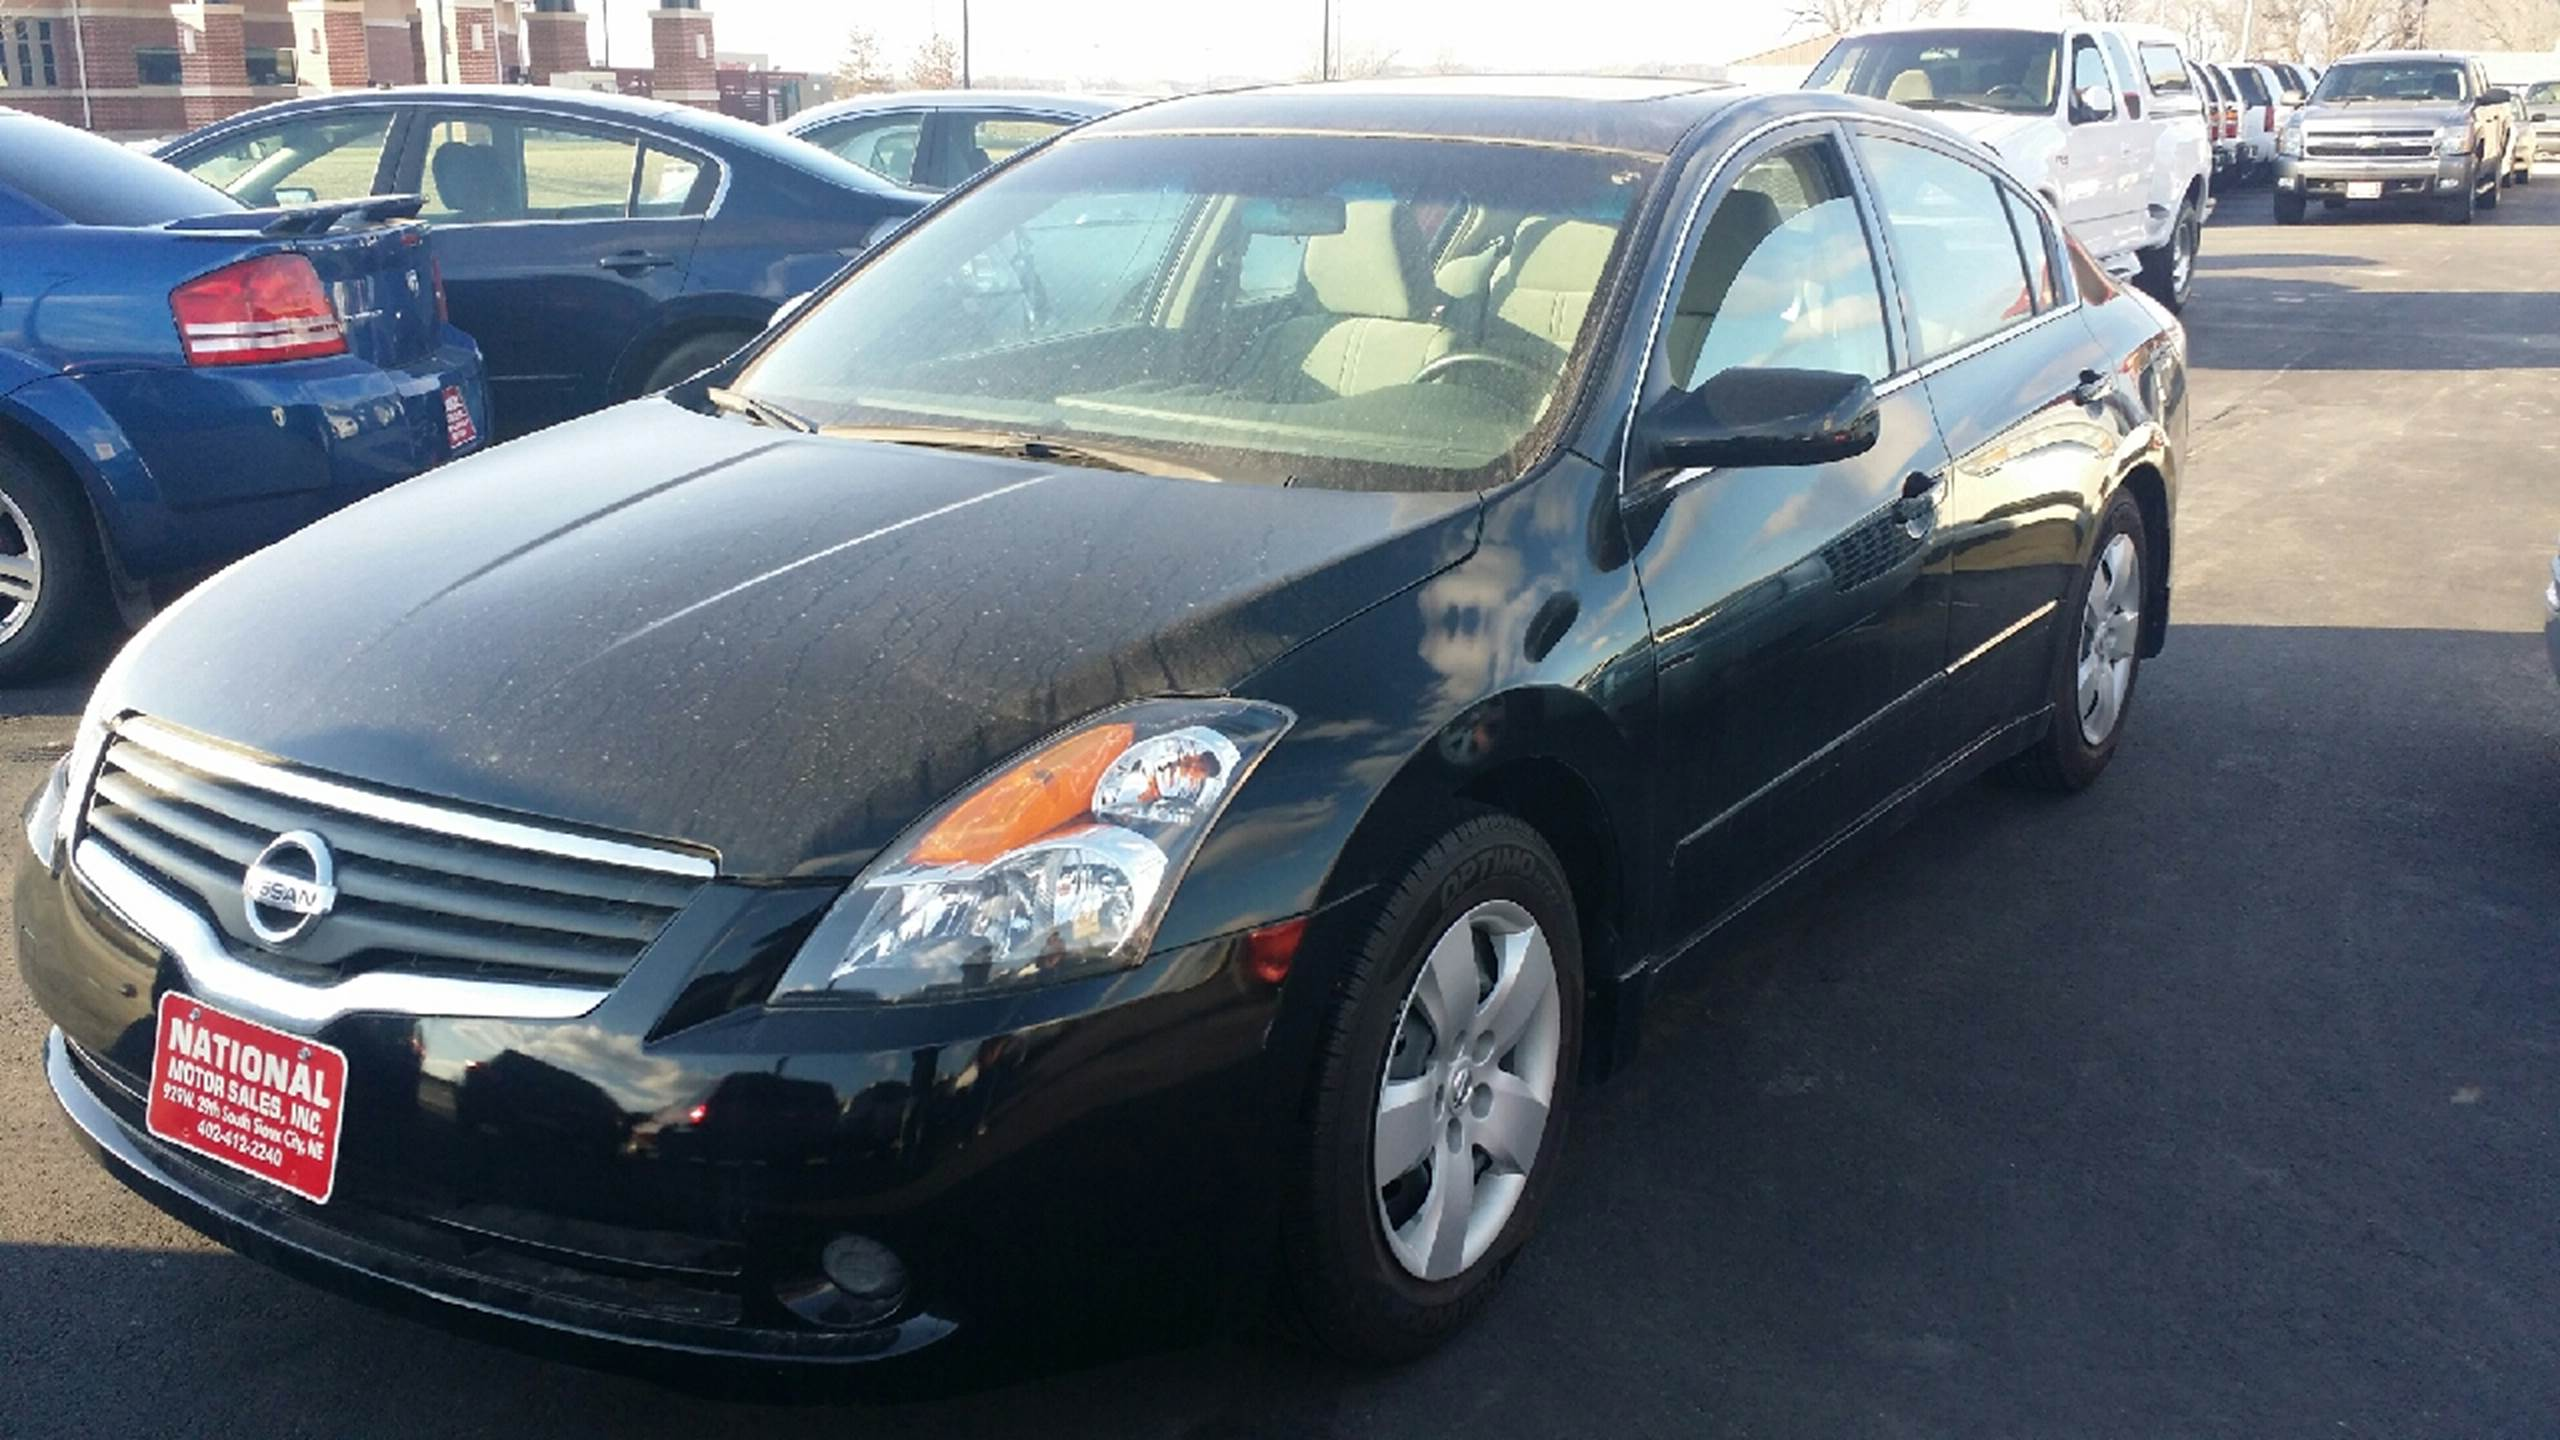 2007 Nissan Altima For Sale In South Sioux City, NE